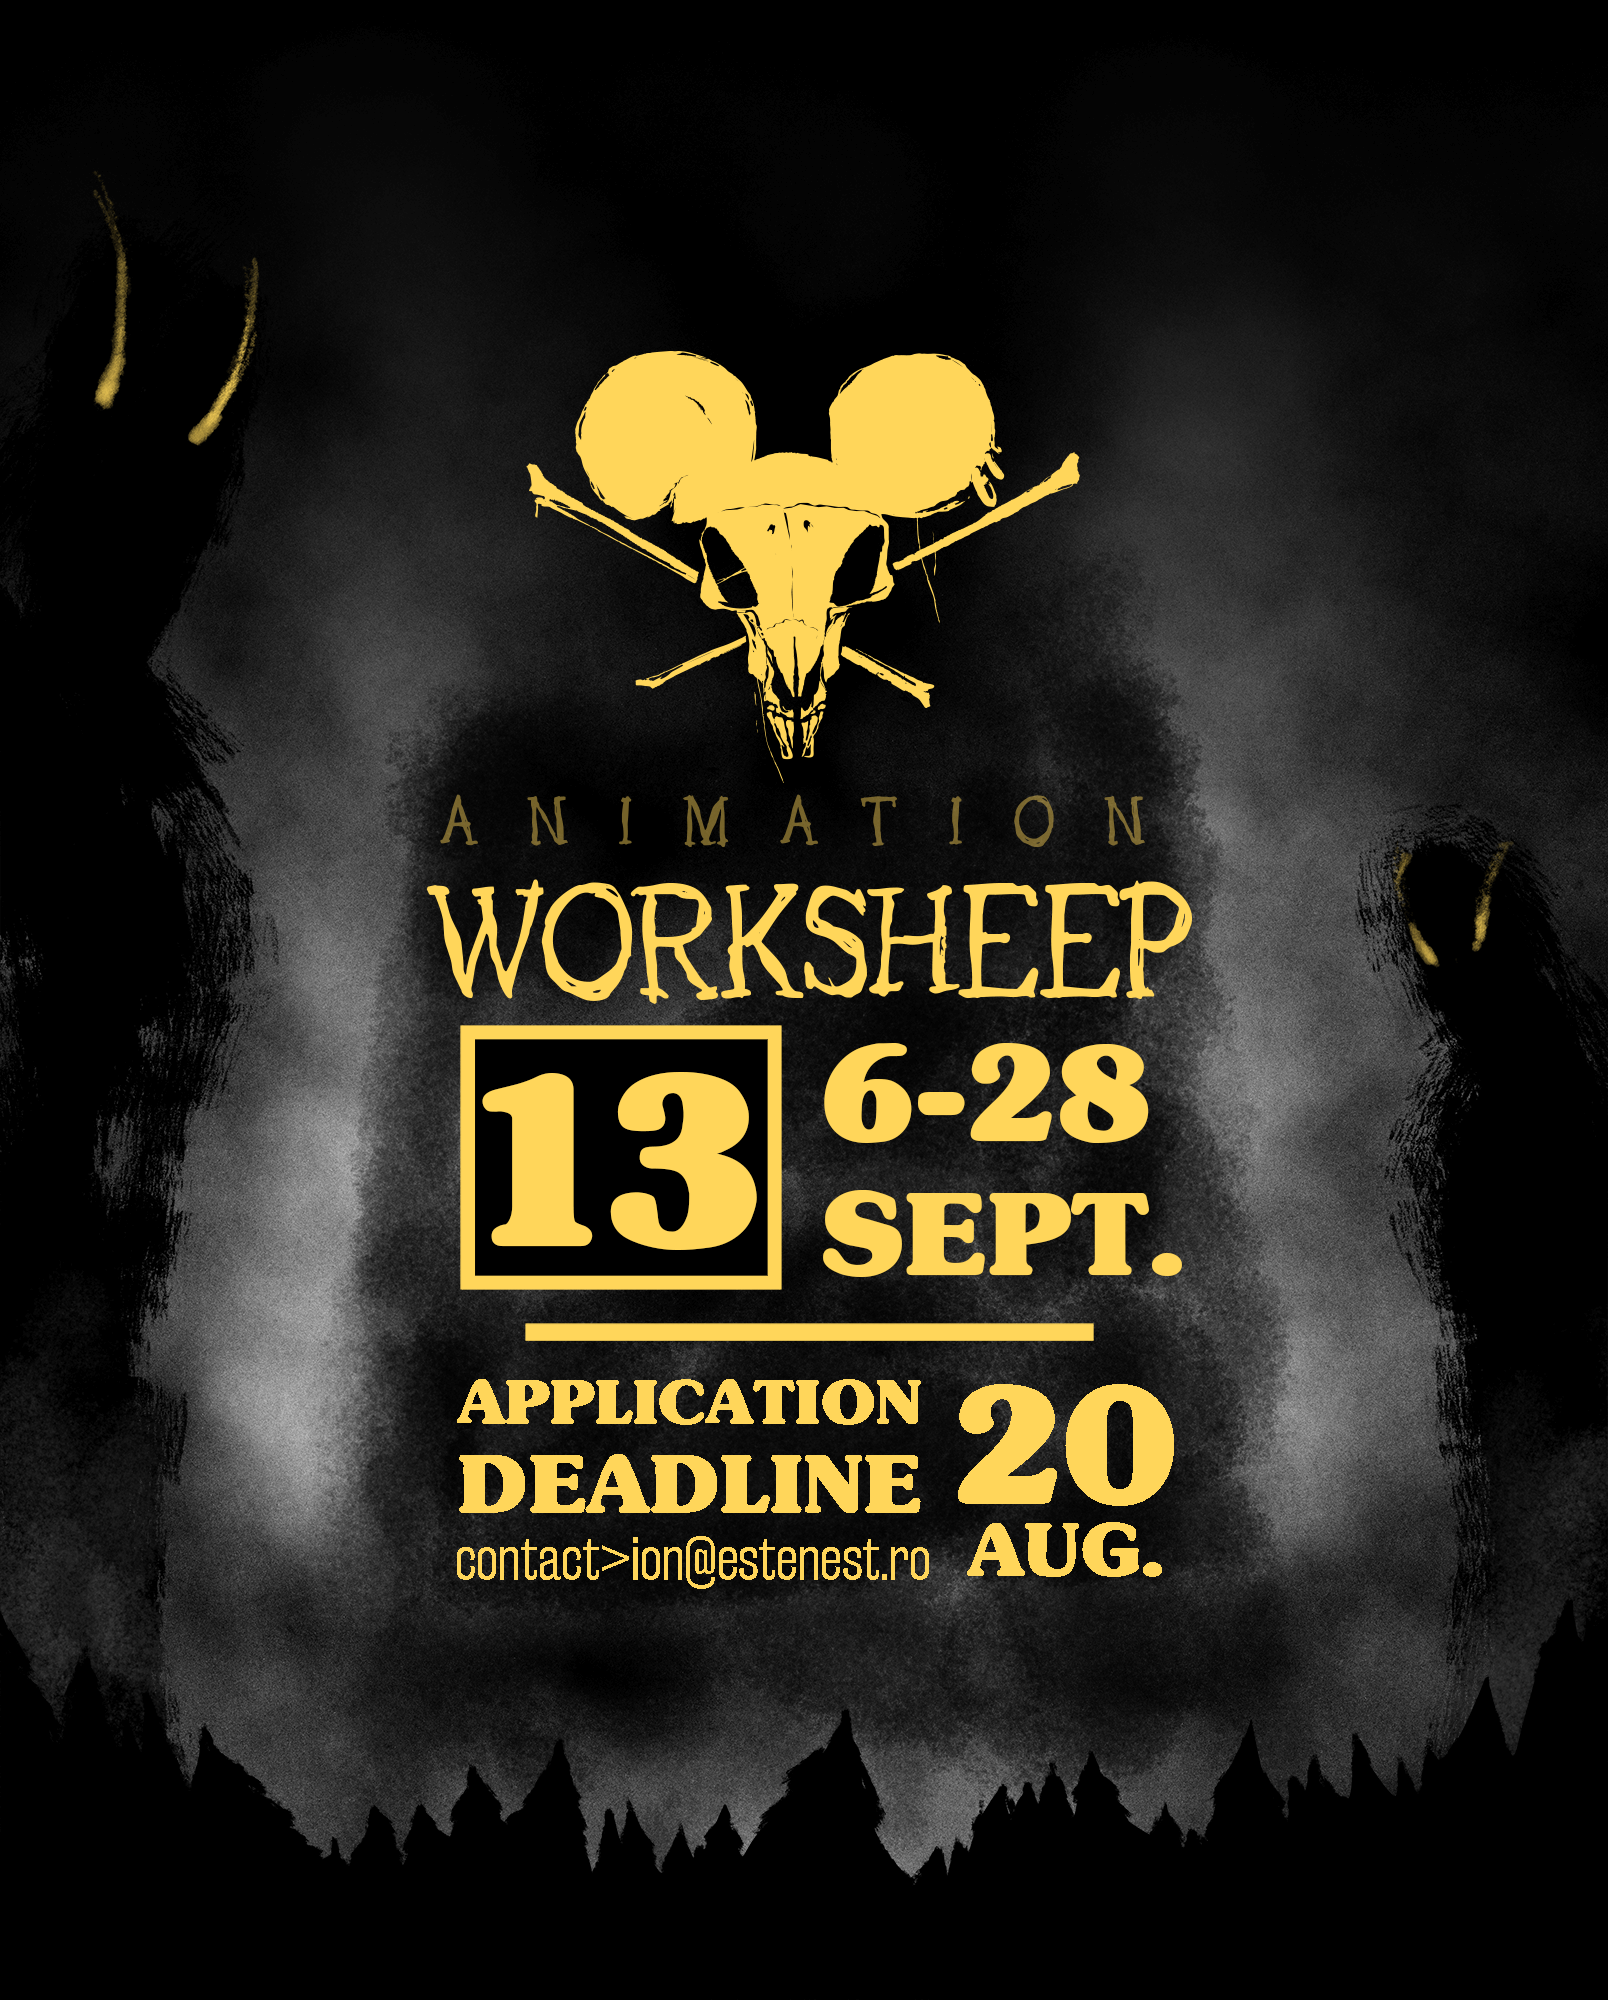 Animation Worksheep #13 a dat start înscrierilor